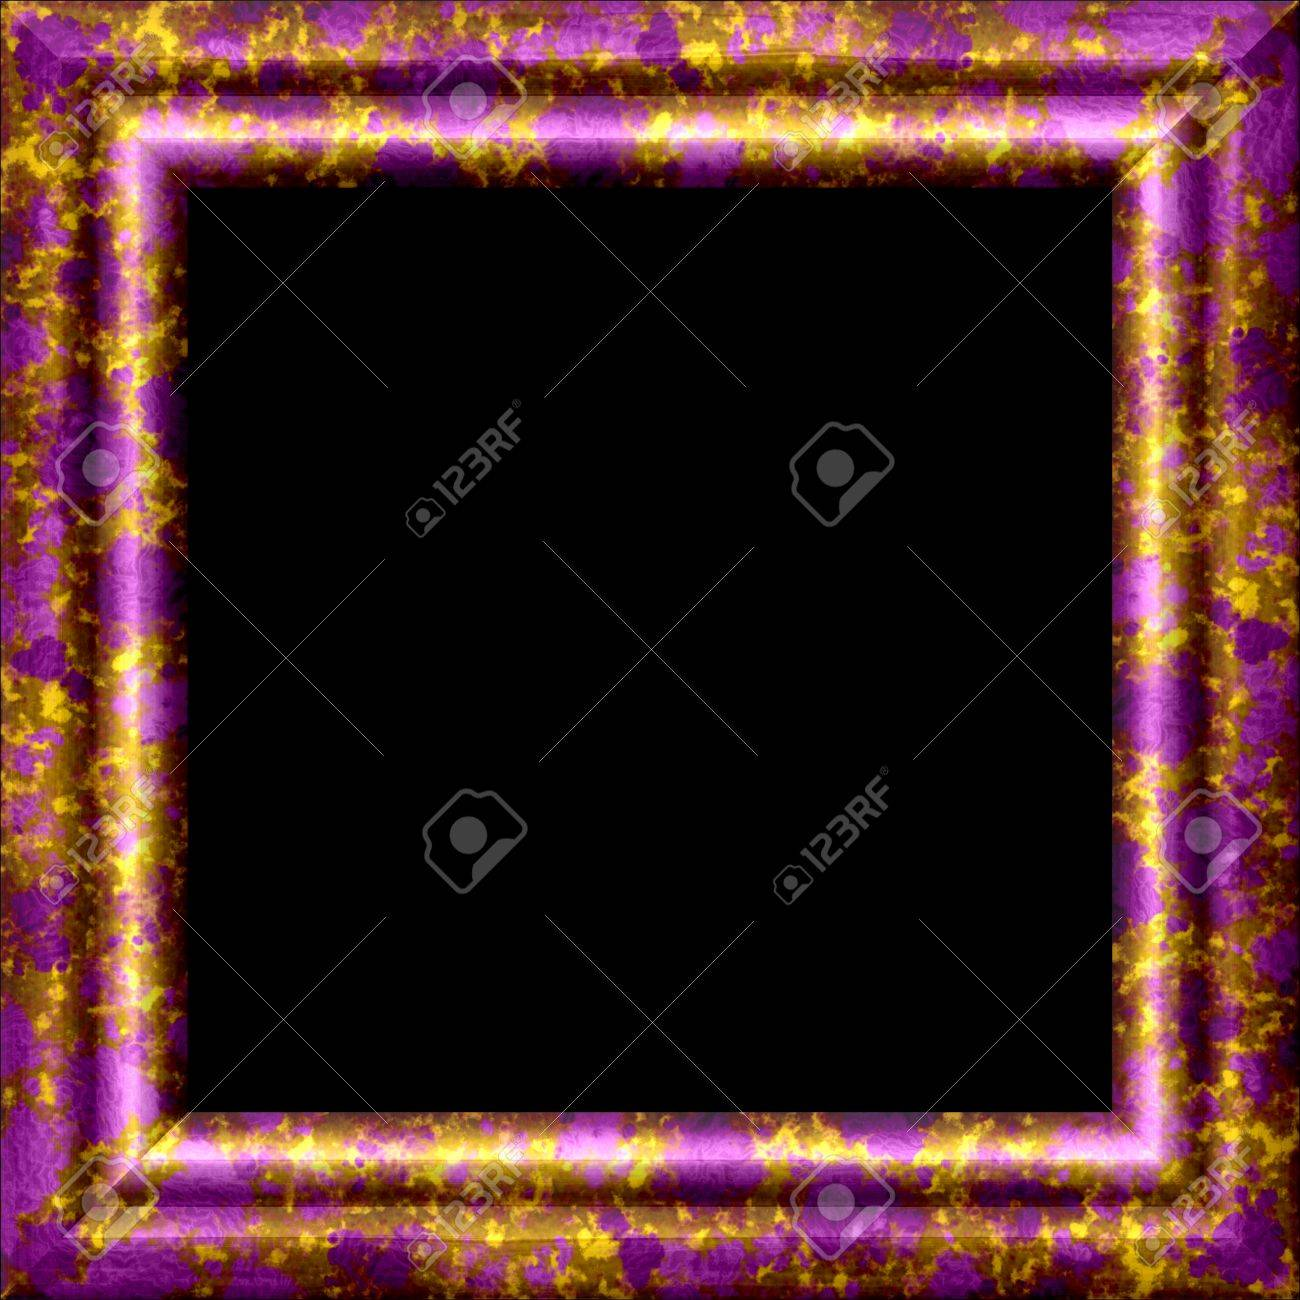 Purple Metal Or Wooden Ornamental Frame With Golden Splash Stock ...